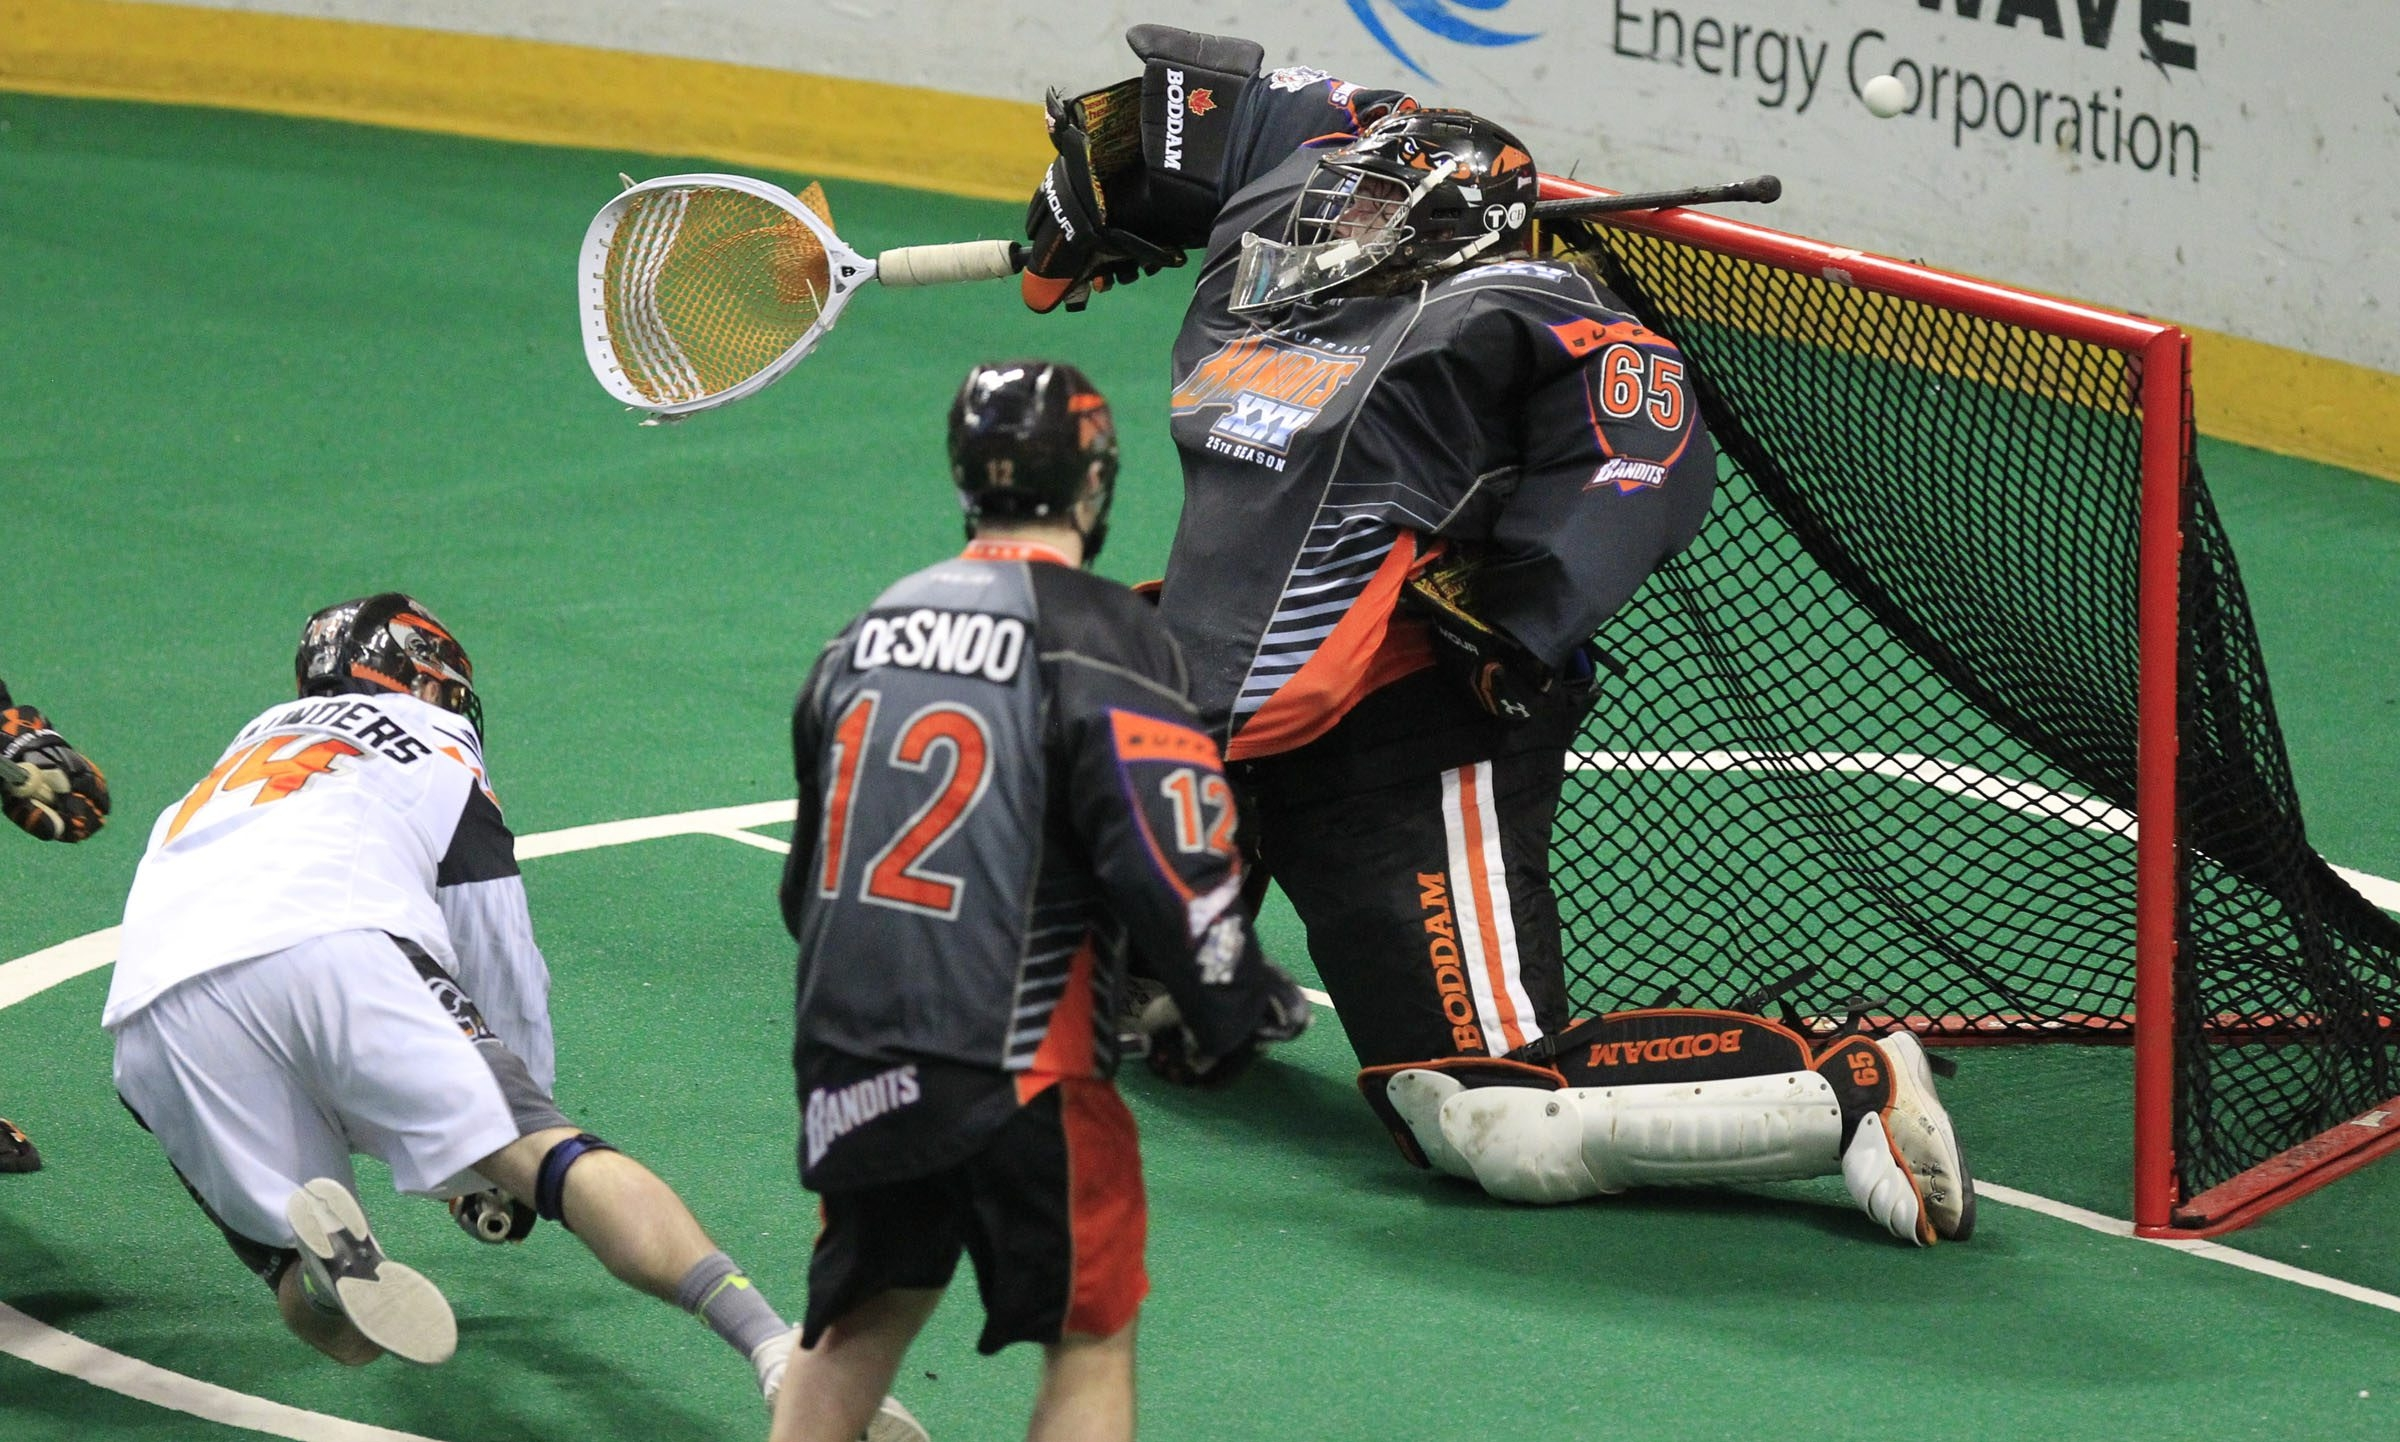 Pat Saunders, shown here trying to score against the Bandits, now will be playing for Buffalo. He was traded by New England on Tuesday. (Buffalo News file photo.)